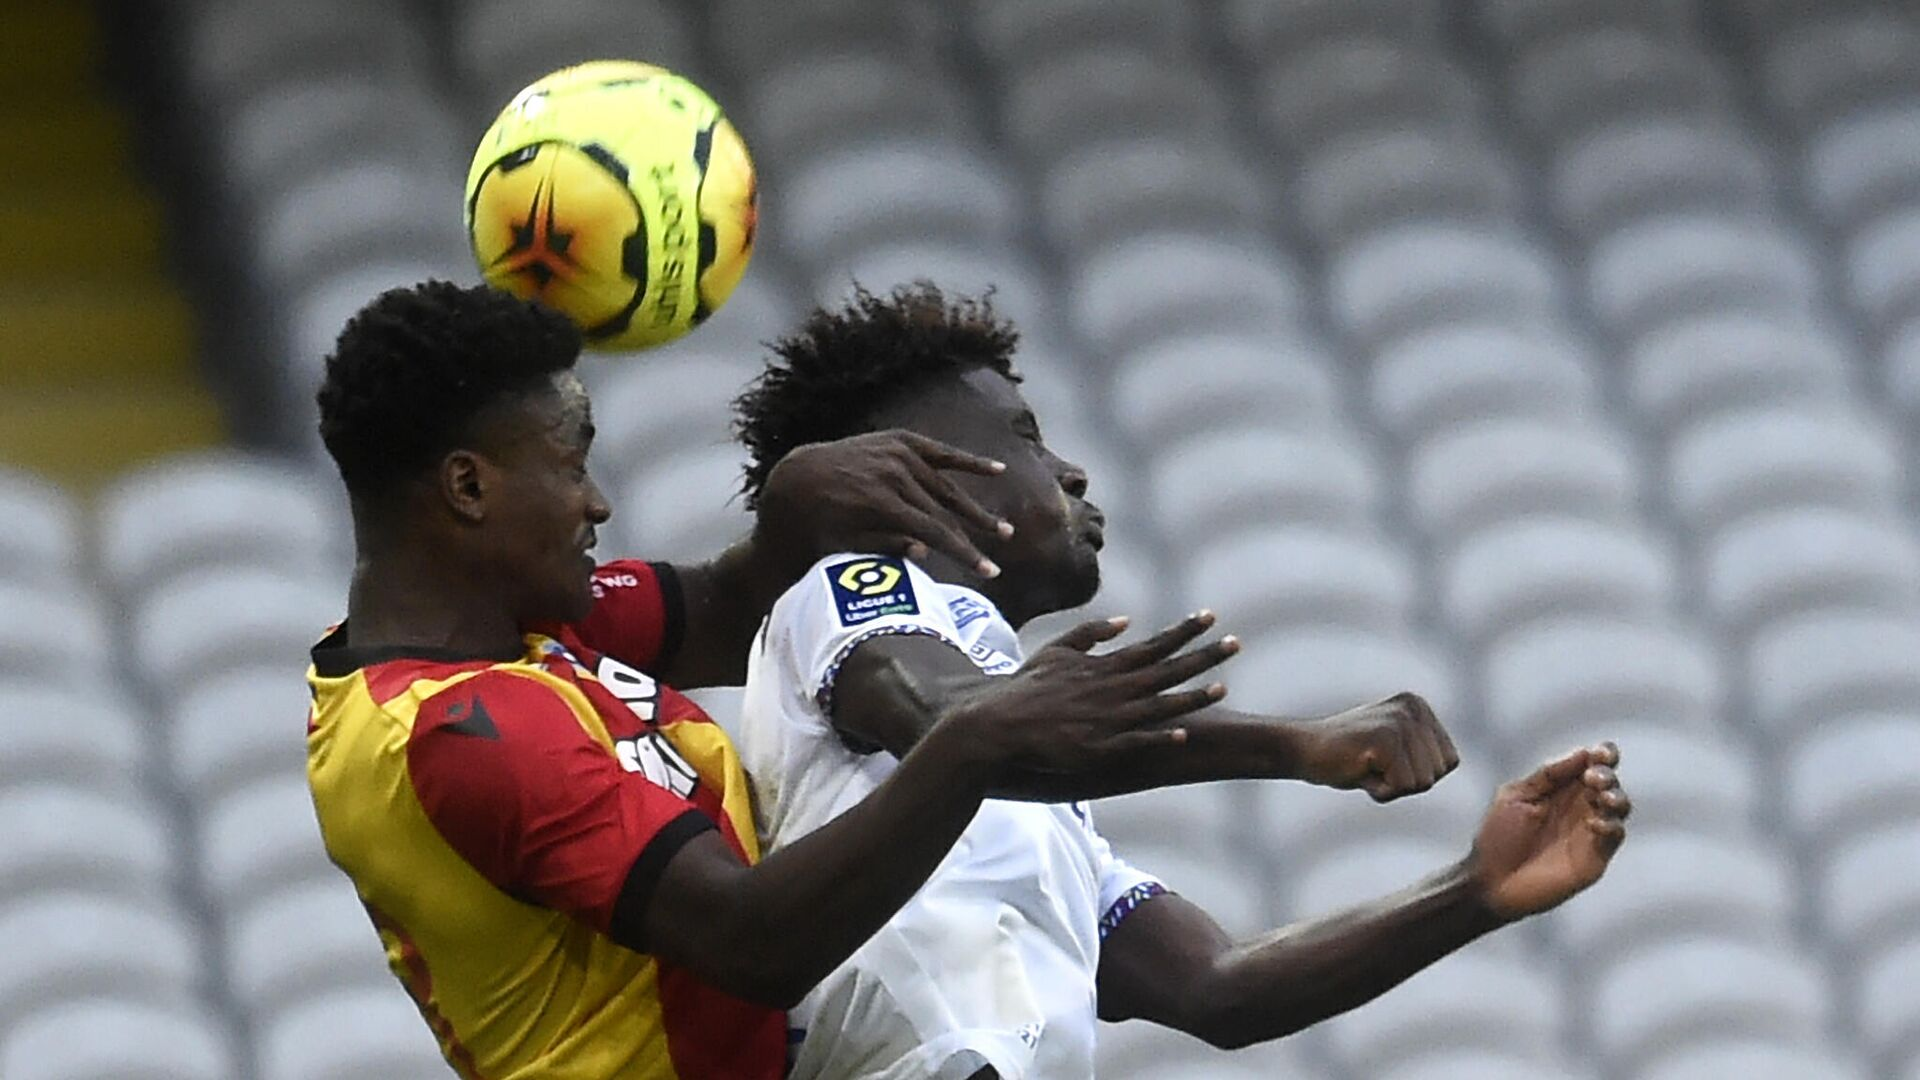 Lens' French defender Ismael Boura (L) fights for the ball with Reims' French forward Nathanael Mbuku during the French L1 football match between Lens (RCL) and Reims (SR) at the Bollaert-Delelis Stadium in Lens, northern France, on November 8, 2020. (Photo by FRANCOIS LO PRESTI / AFP) - РИА Новости, 1920, 08.11.2020